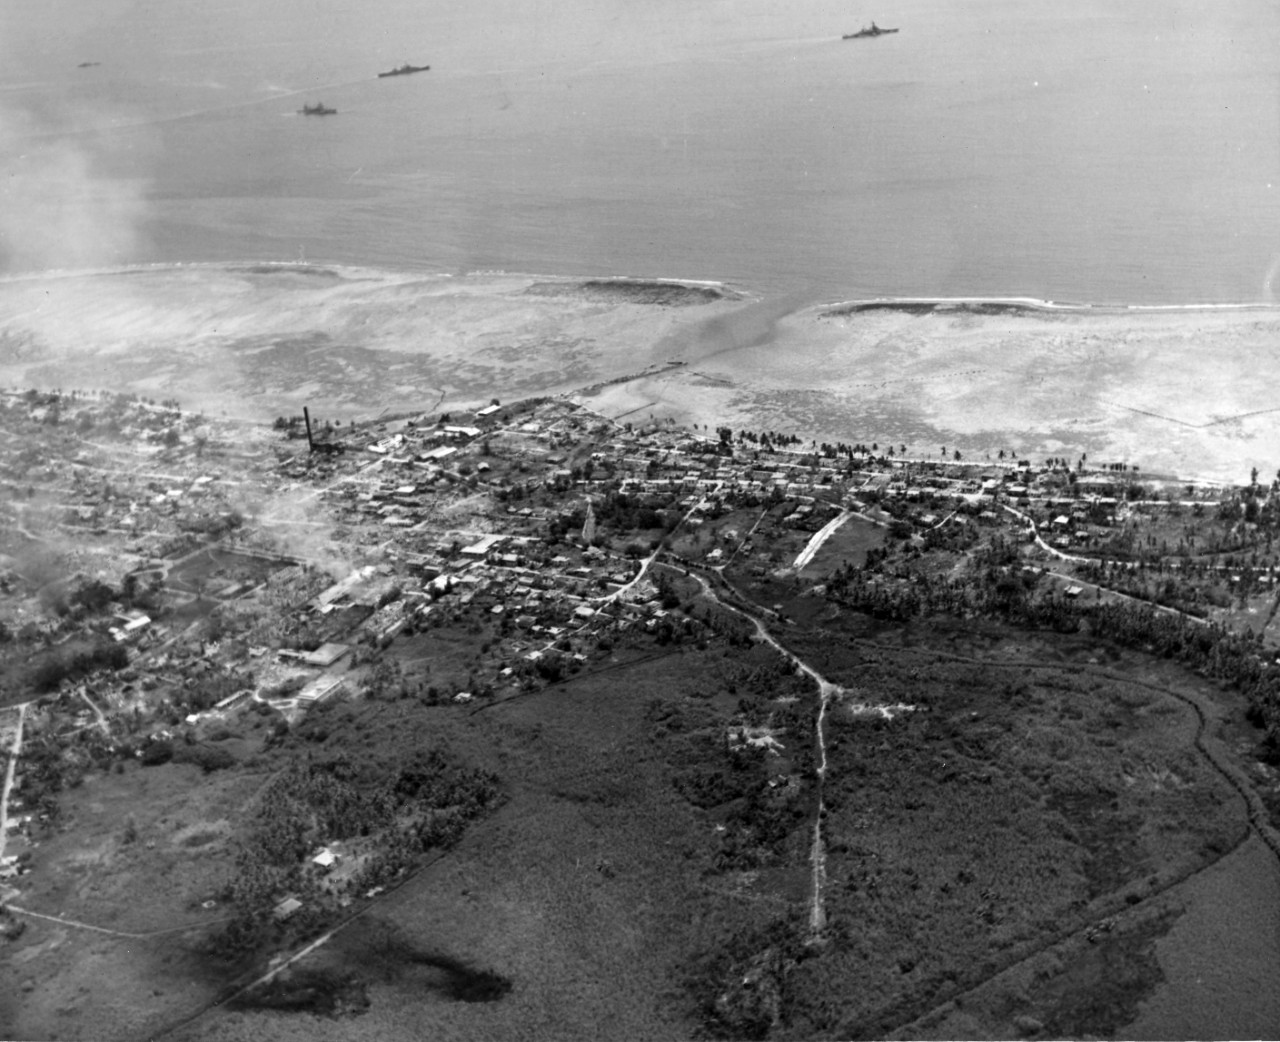 Aerial of Agana, Guam. Photo taken by plane from USS Yorktown (CV-10). September 5, 1944. Photo is from the CAPT Hays R. Browning Photo Collection.